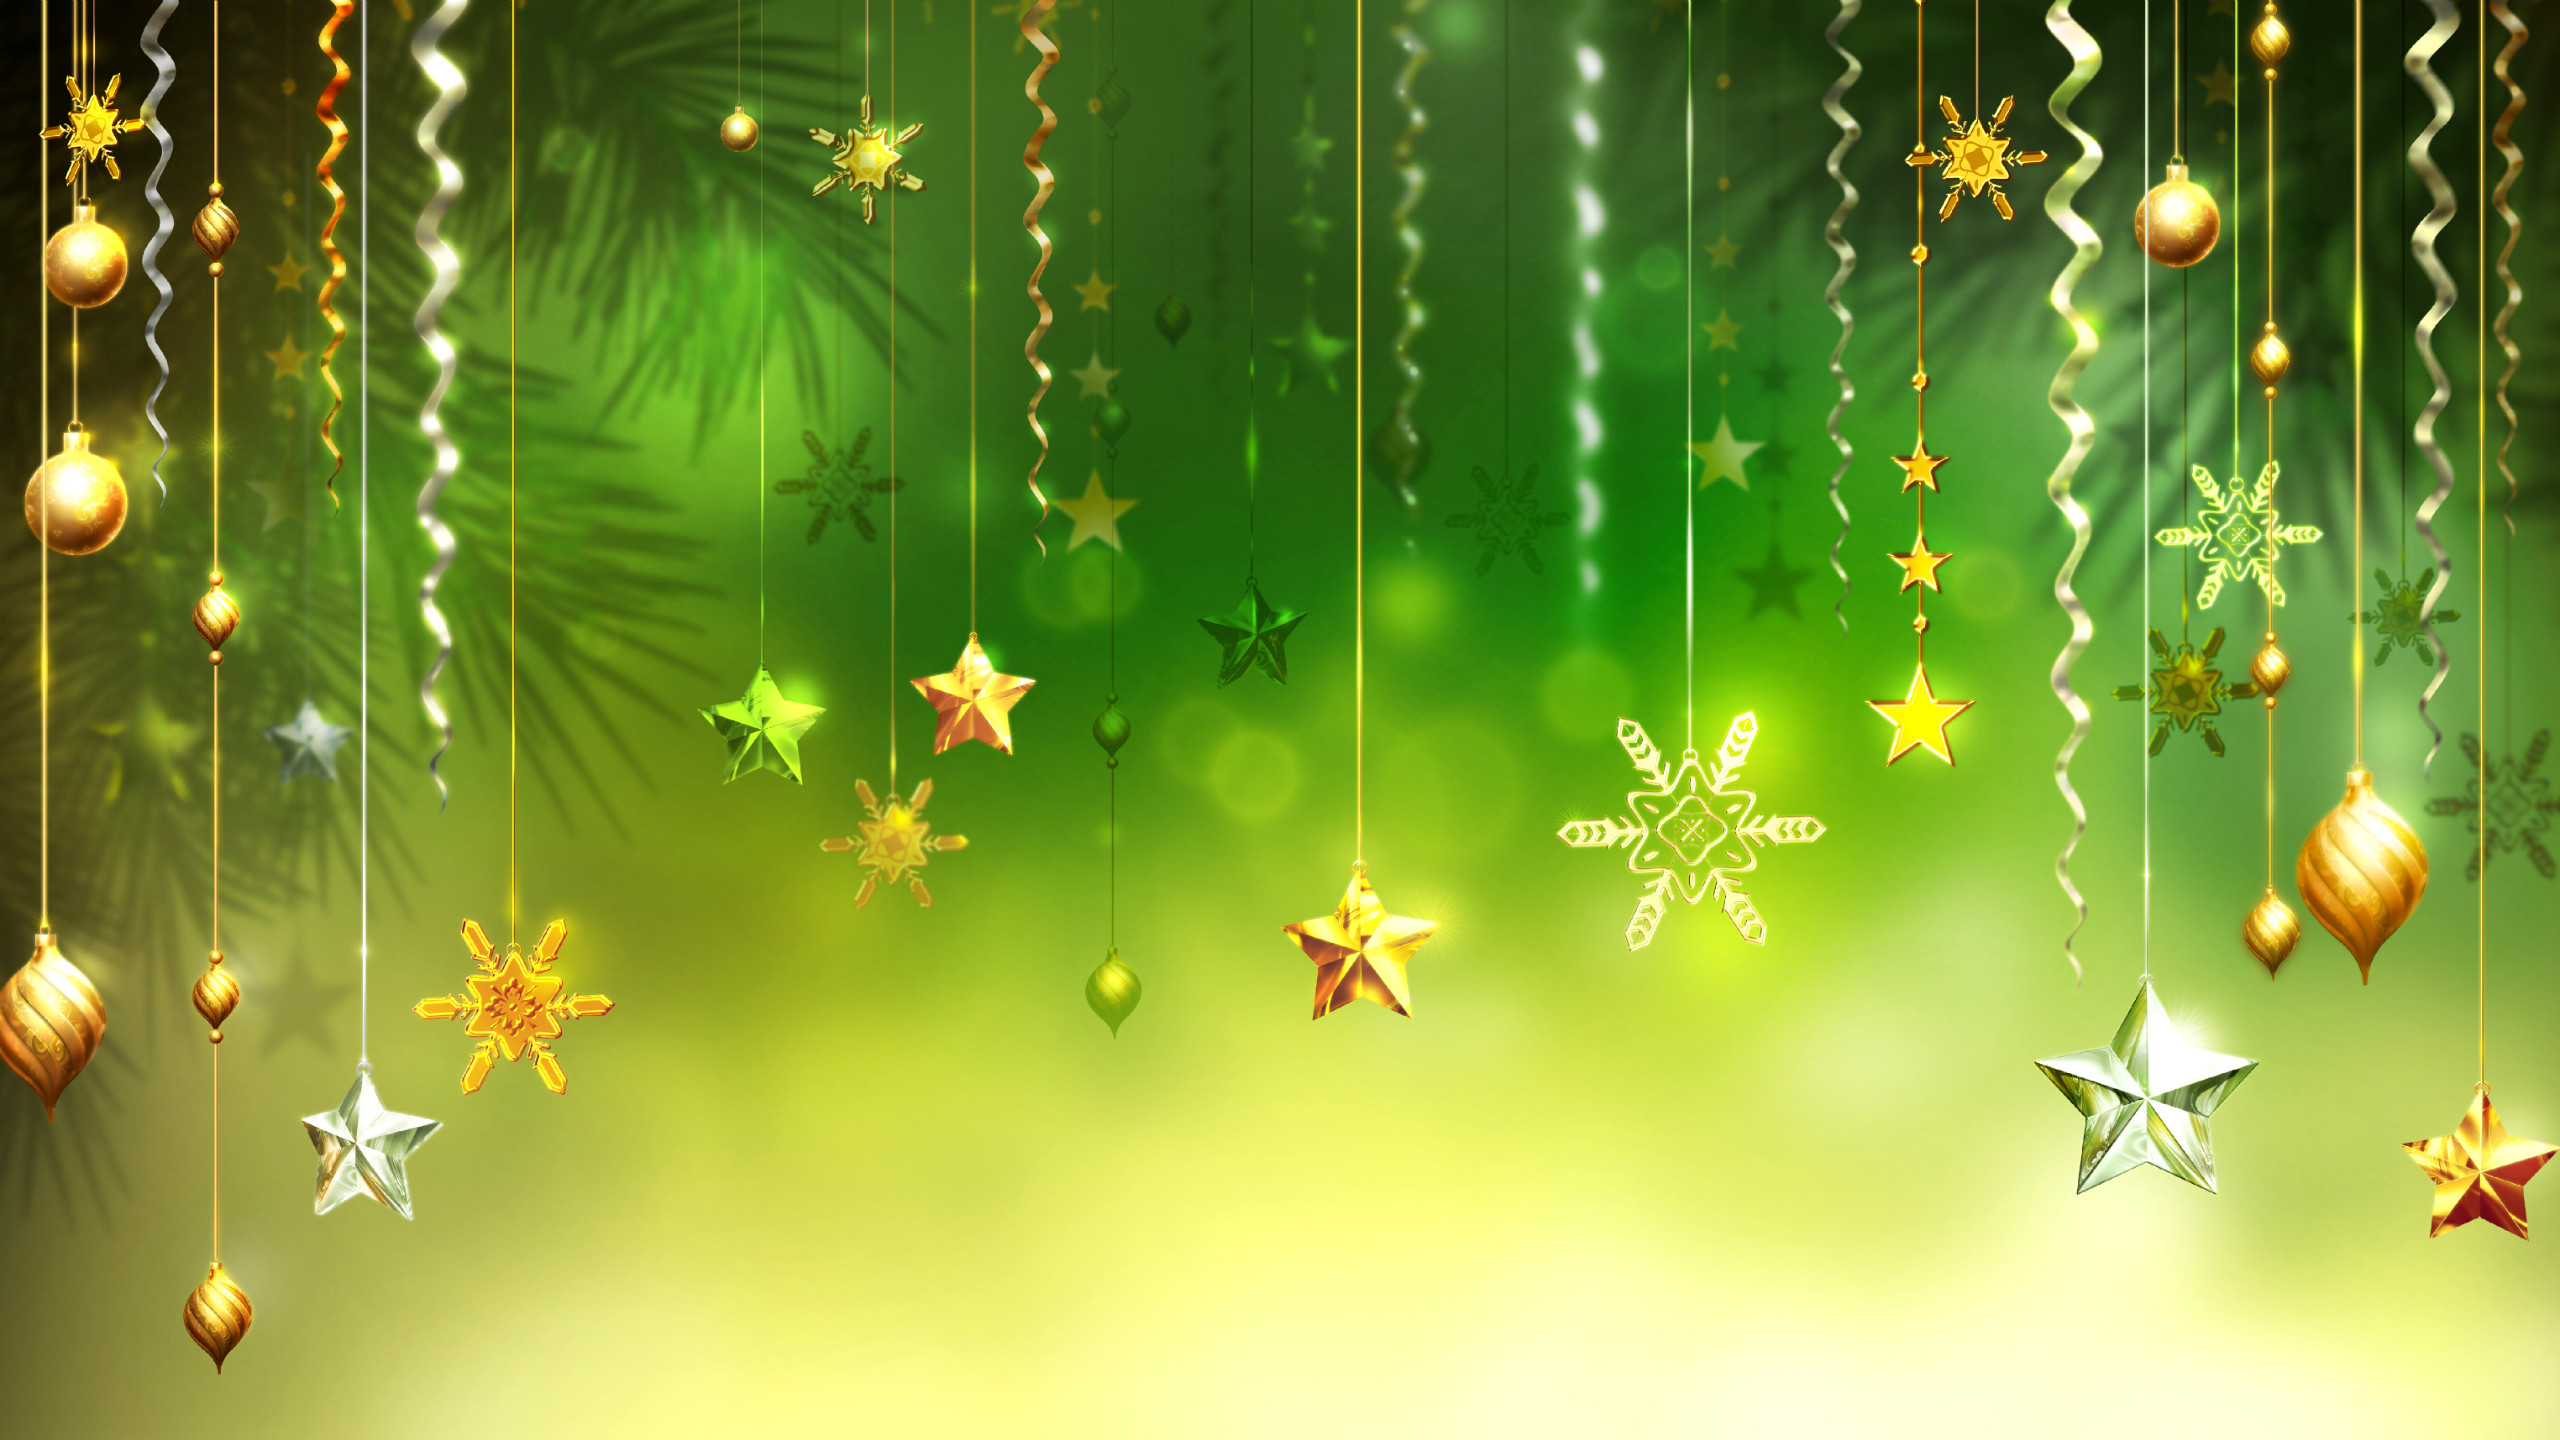 2560x1440 Christmas images Merry Christmas HD wallpaper and background photos